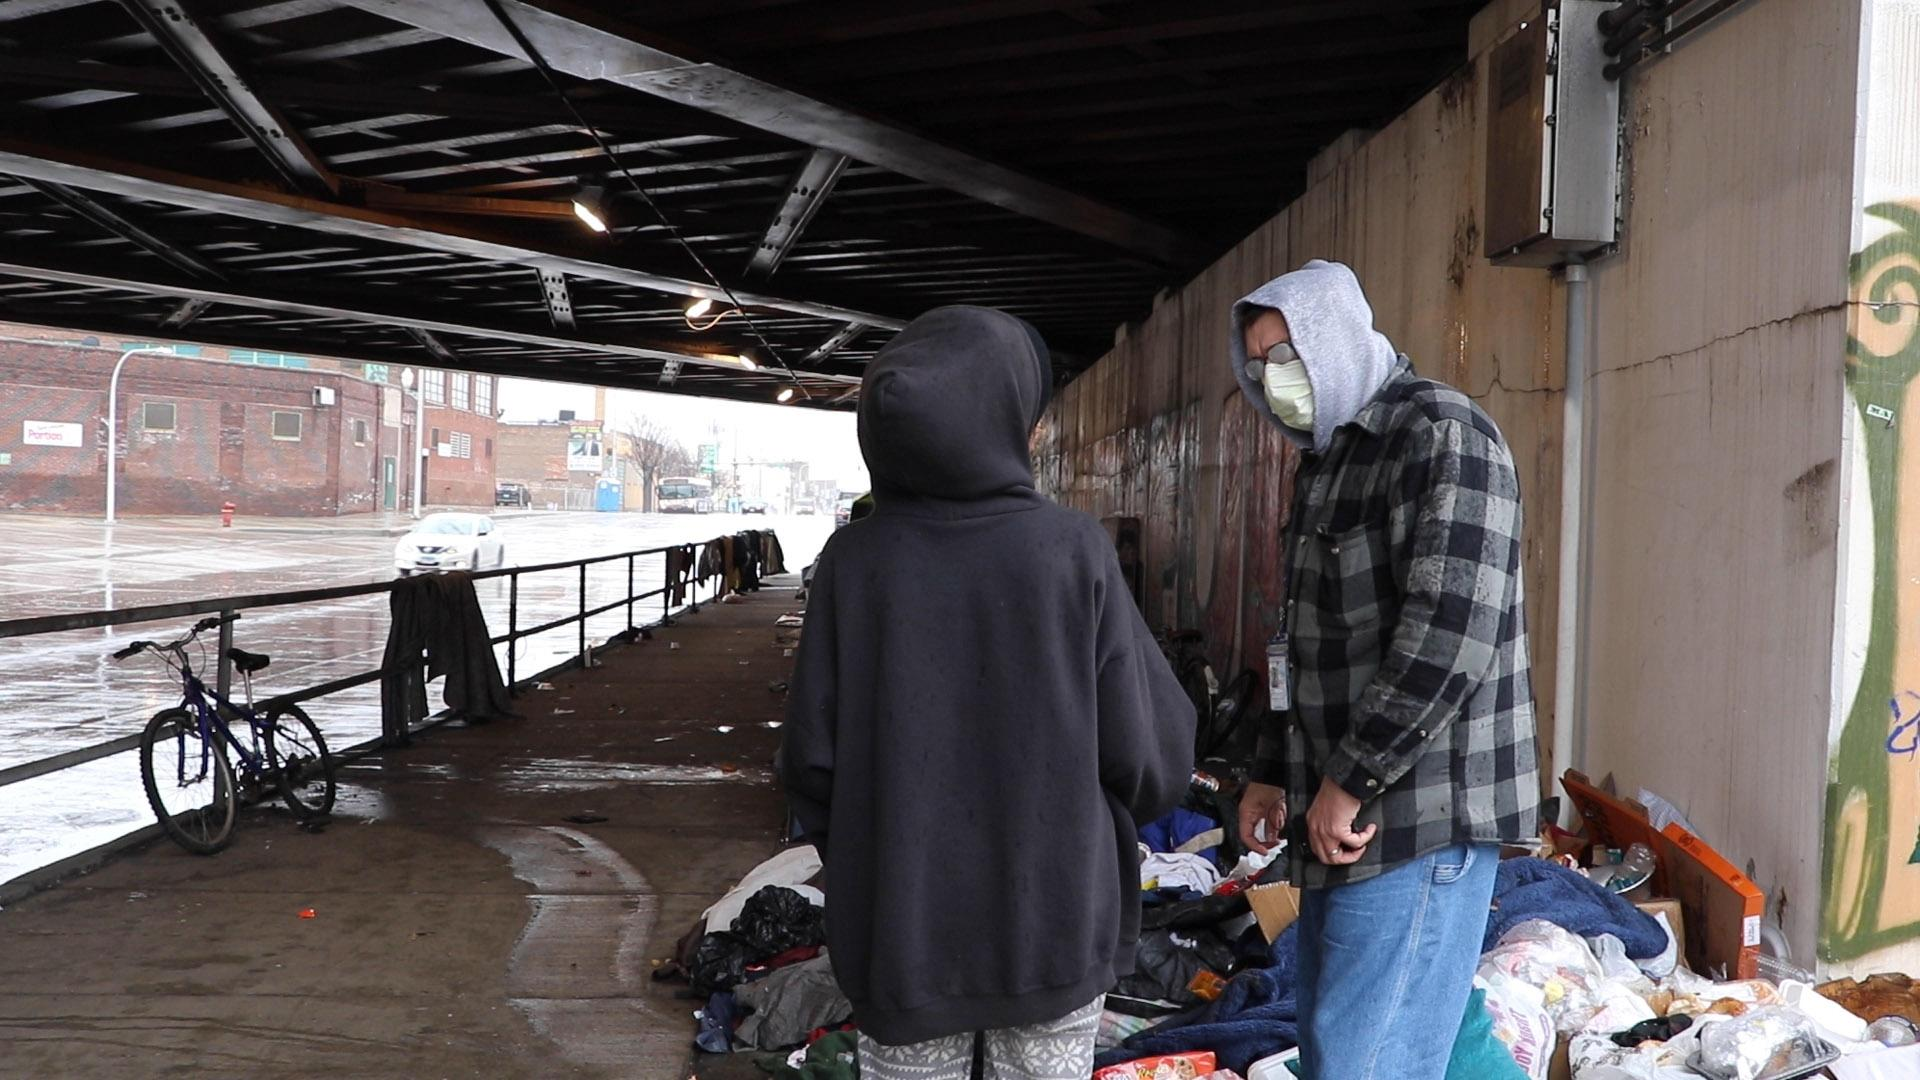 Stephan Koruba, a nurse practitioner with nonprofit The Night Ministry, speaks to a woman at a homeless encampment on Chicago's West Side. (Evan Garcia / WTTW News)